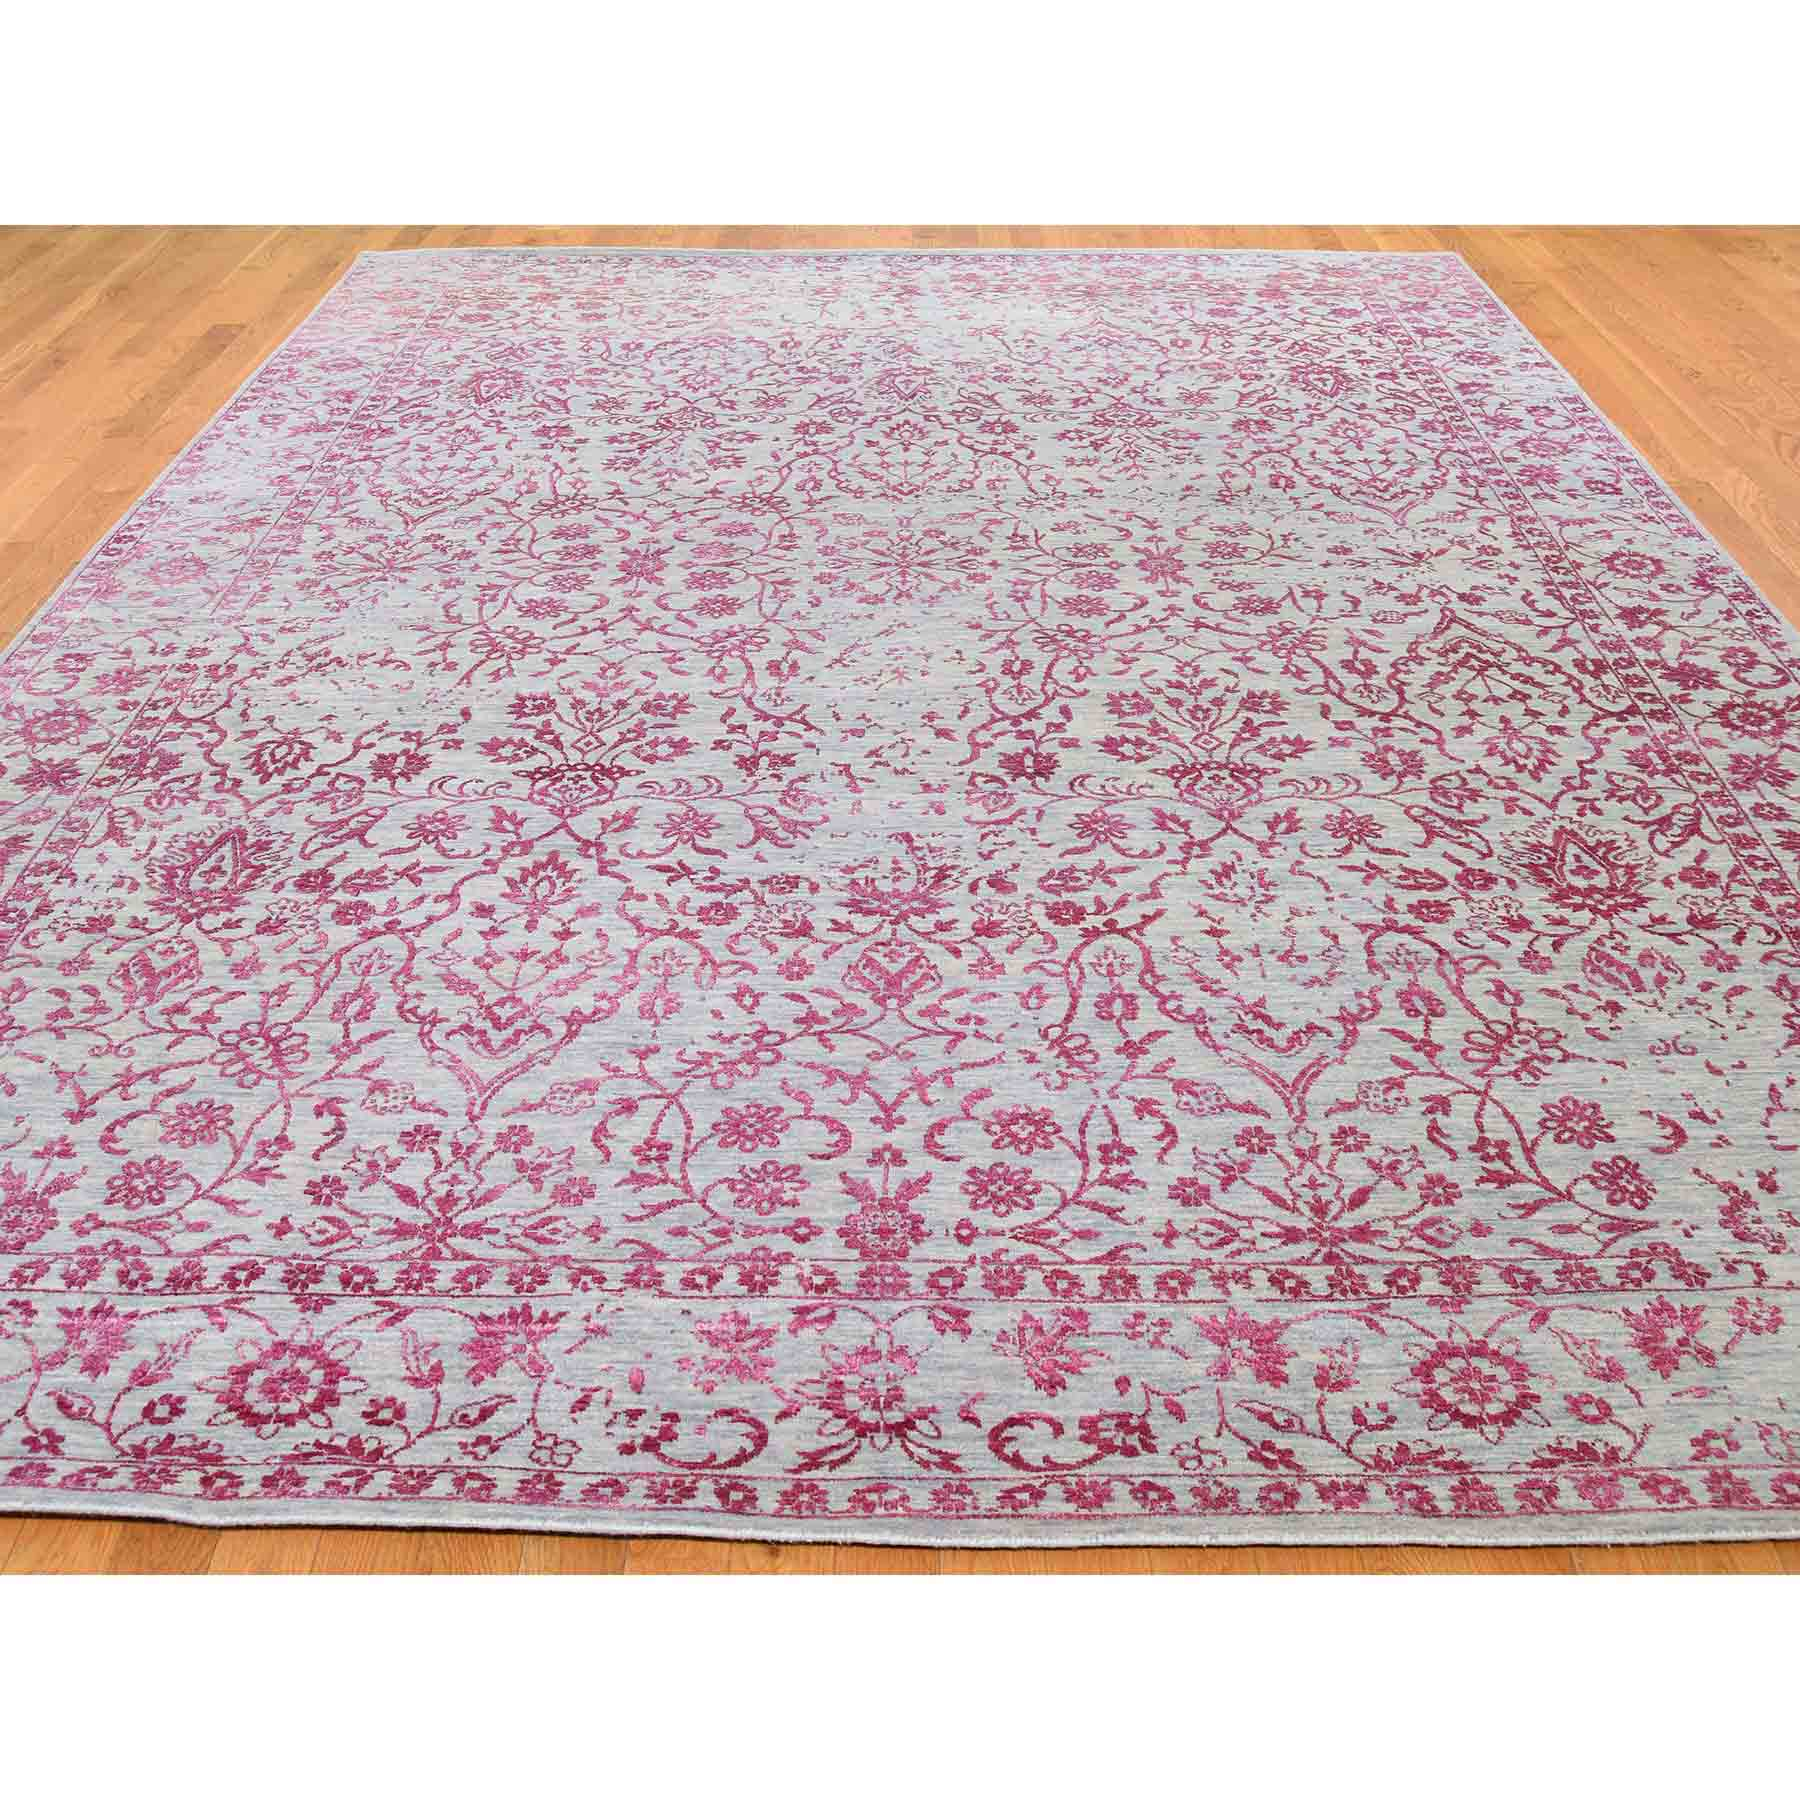 Modern-and-Contemporary-Hand-Knotted-Rug-230290